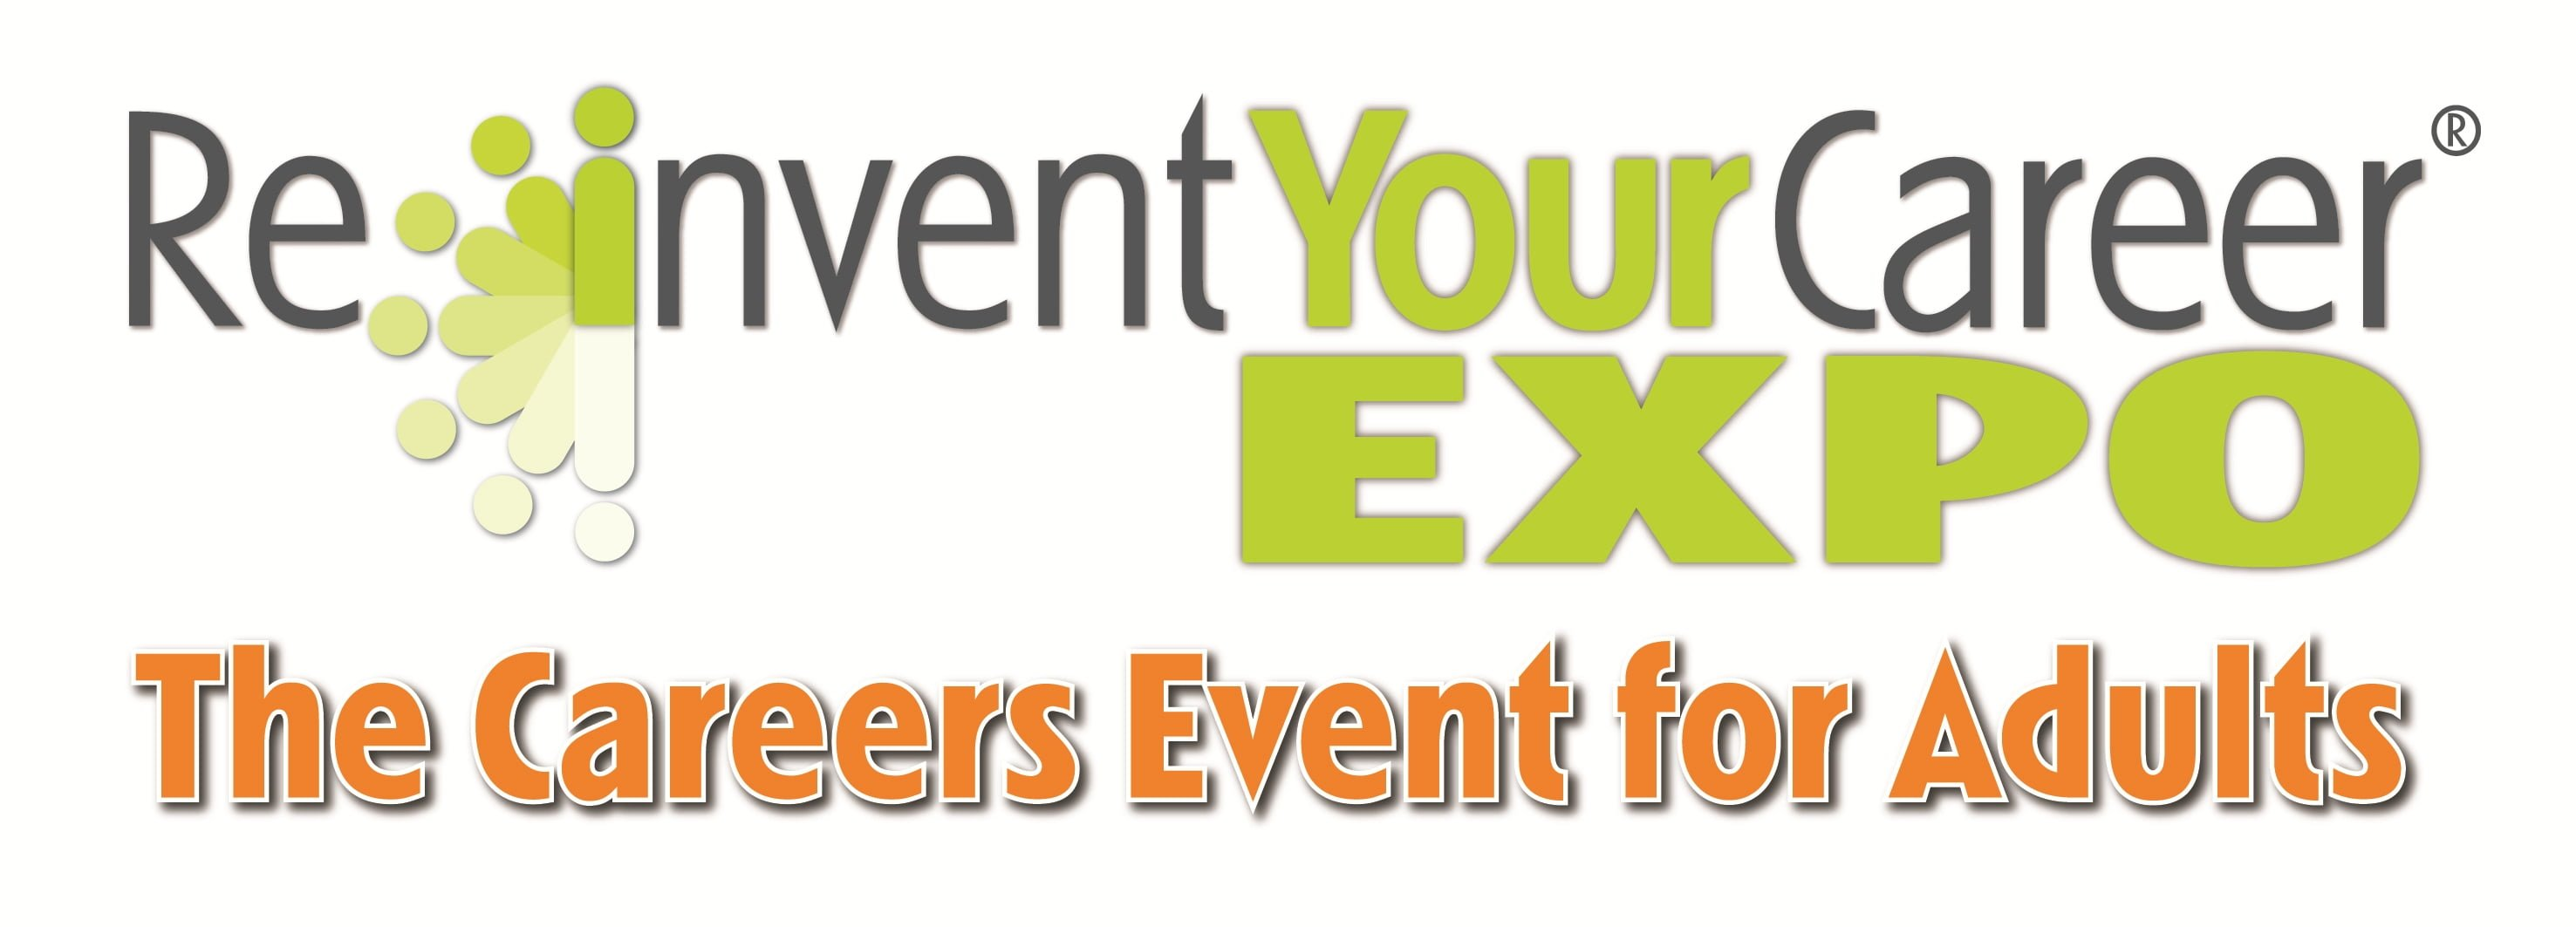 reinvent your career expo melbourne sydney